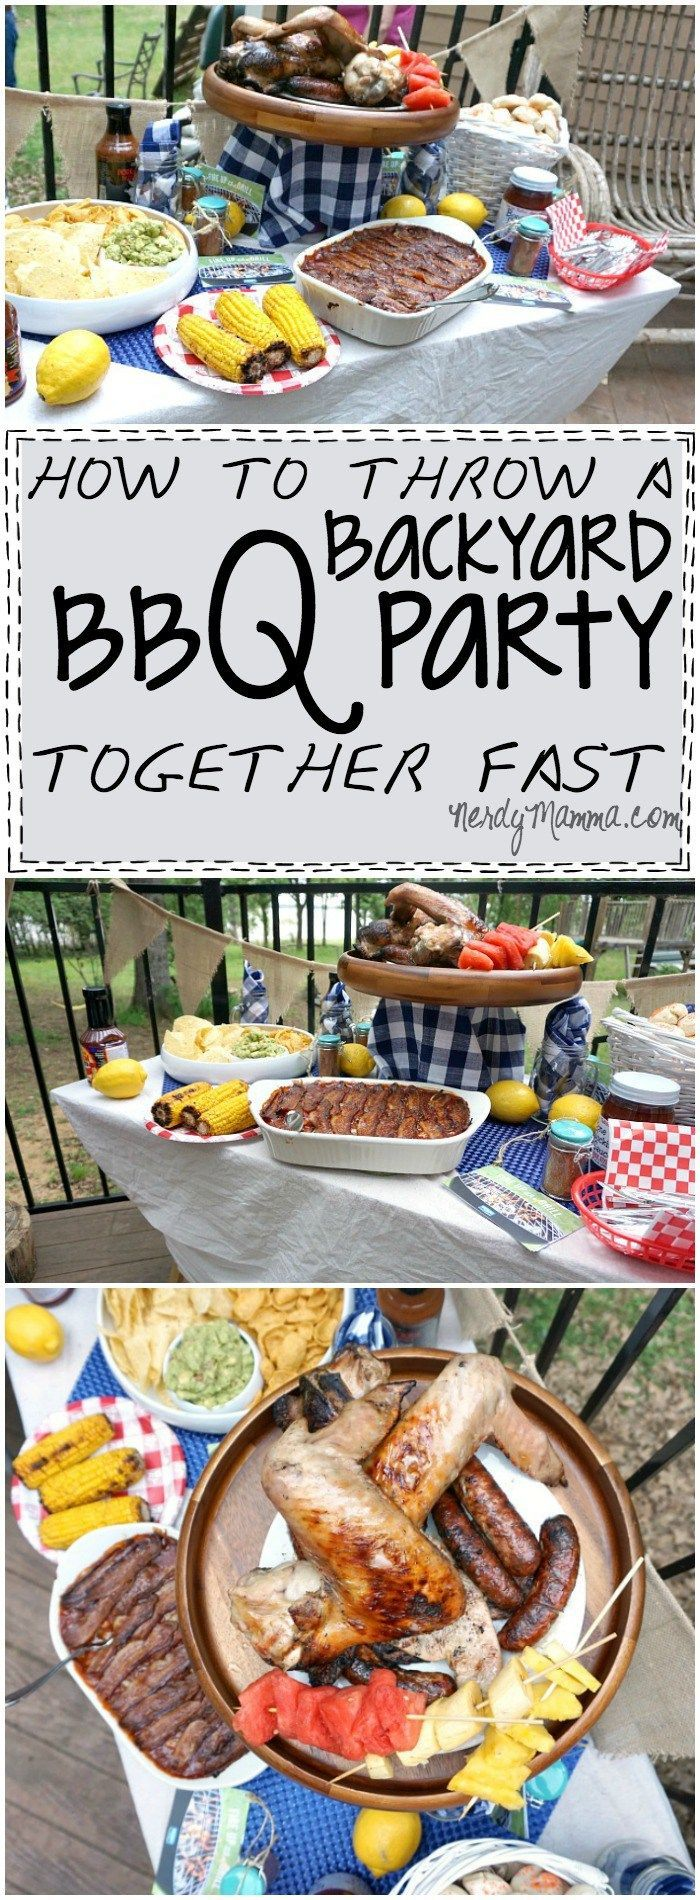 how to throw a backyard bbq party together fast u0026 a giveaway